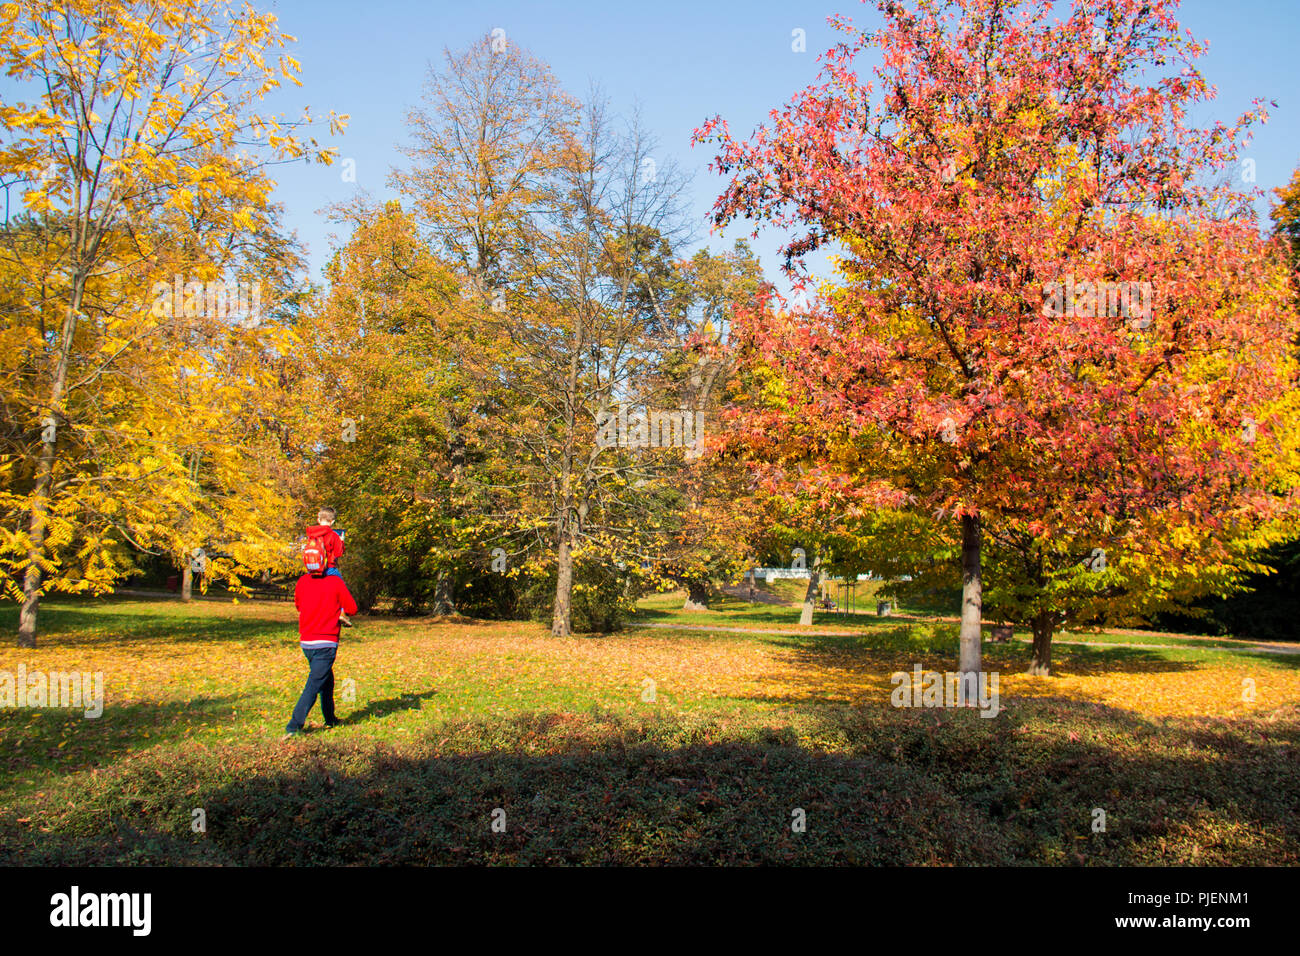 Autumn park with colourful trees and autumn leaves, father is caring his son on the shoulders and walking through the grass in the city park Stock Photo